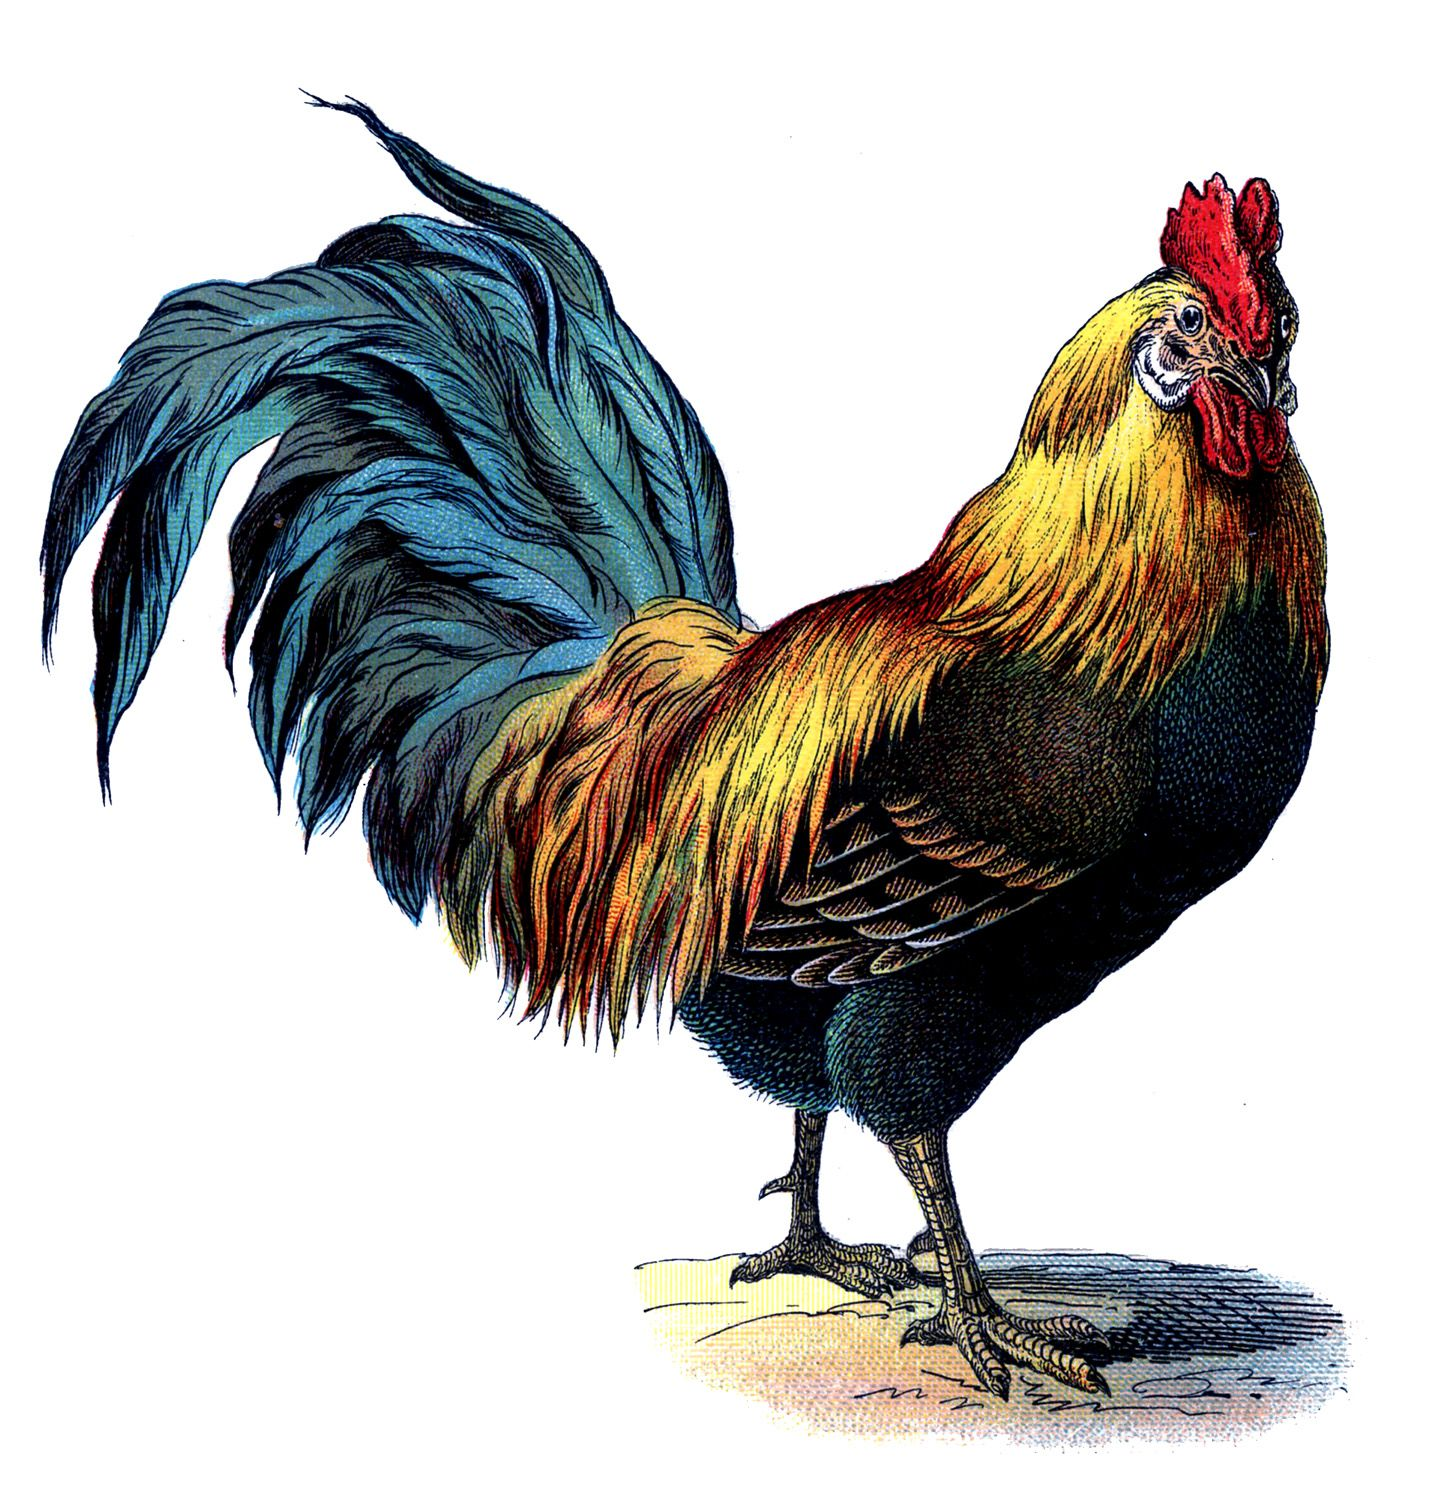 Vintage Graphic - Gorgeous Colorful Rooster | Antigua, Graphics ...